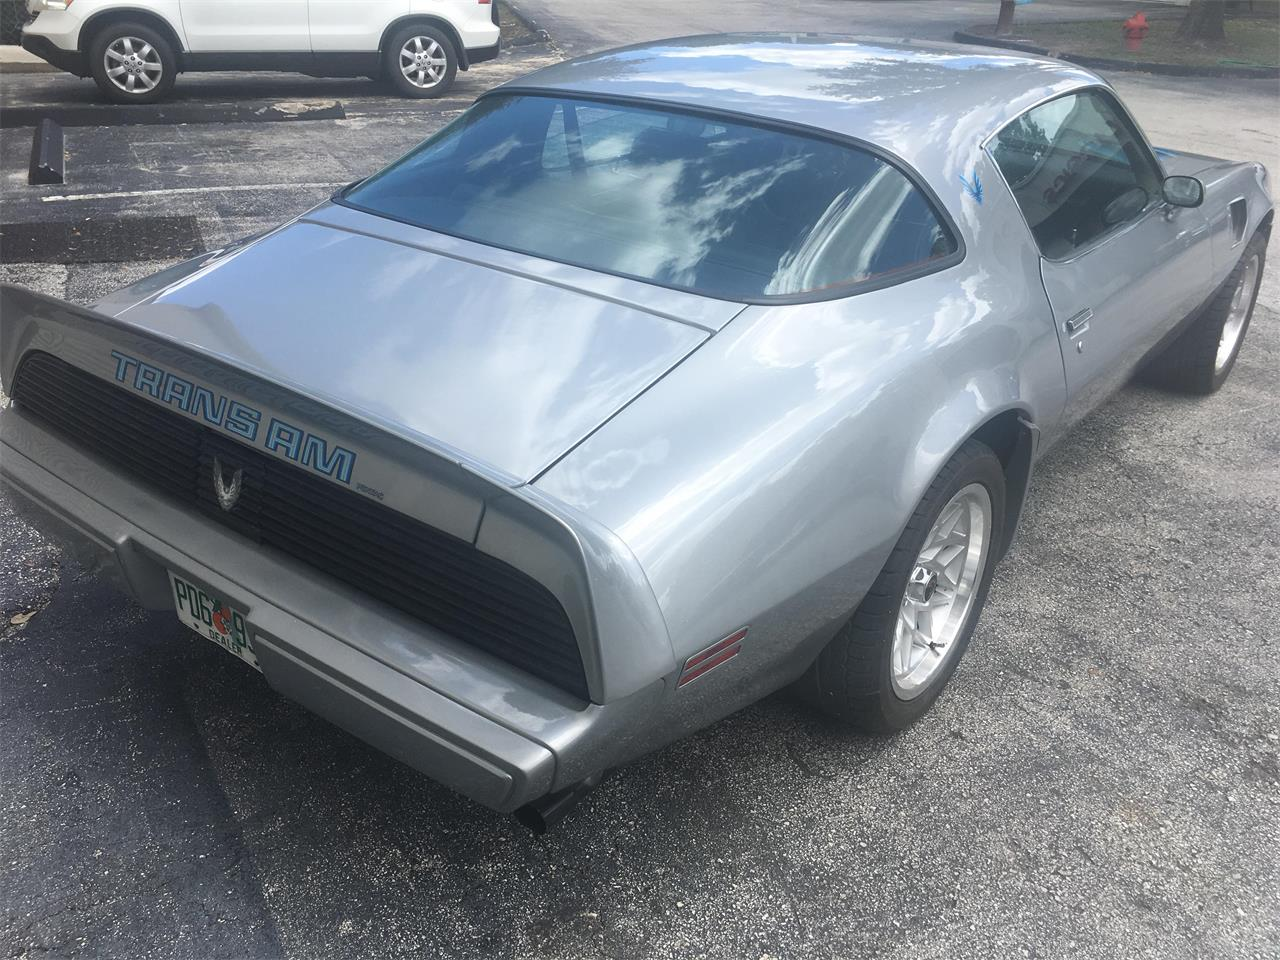 1981 Pontiac Firebird Trans Am for sale in Ponte Verda Beach, FL – photo 20